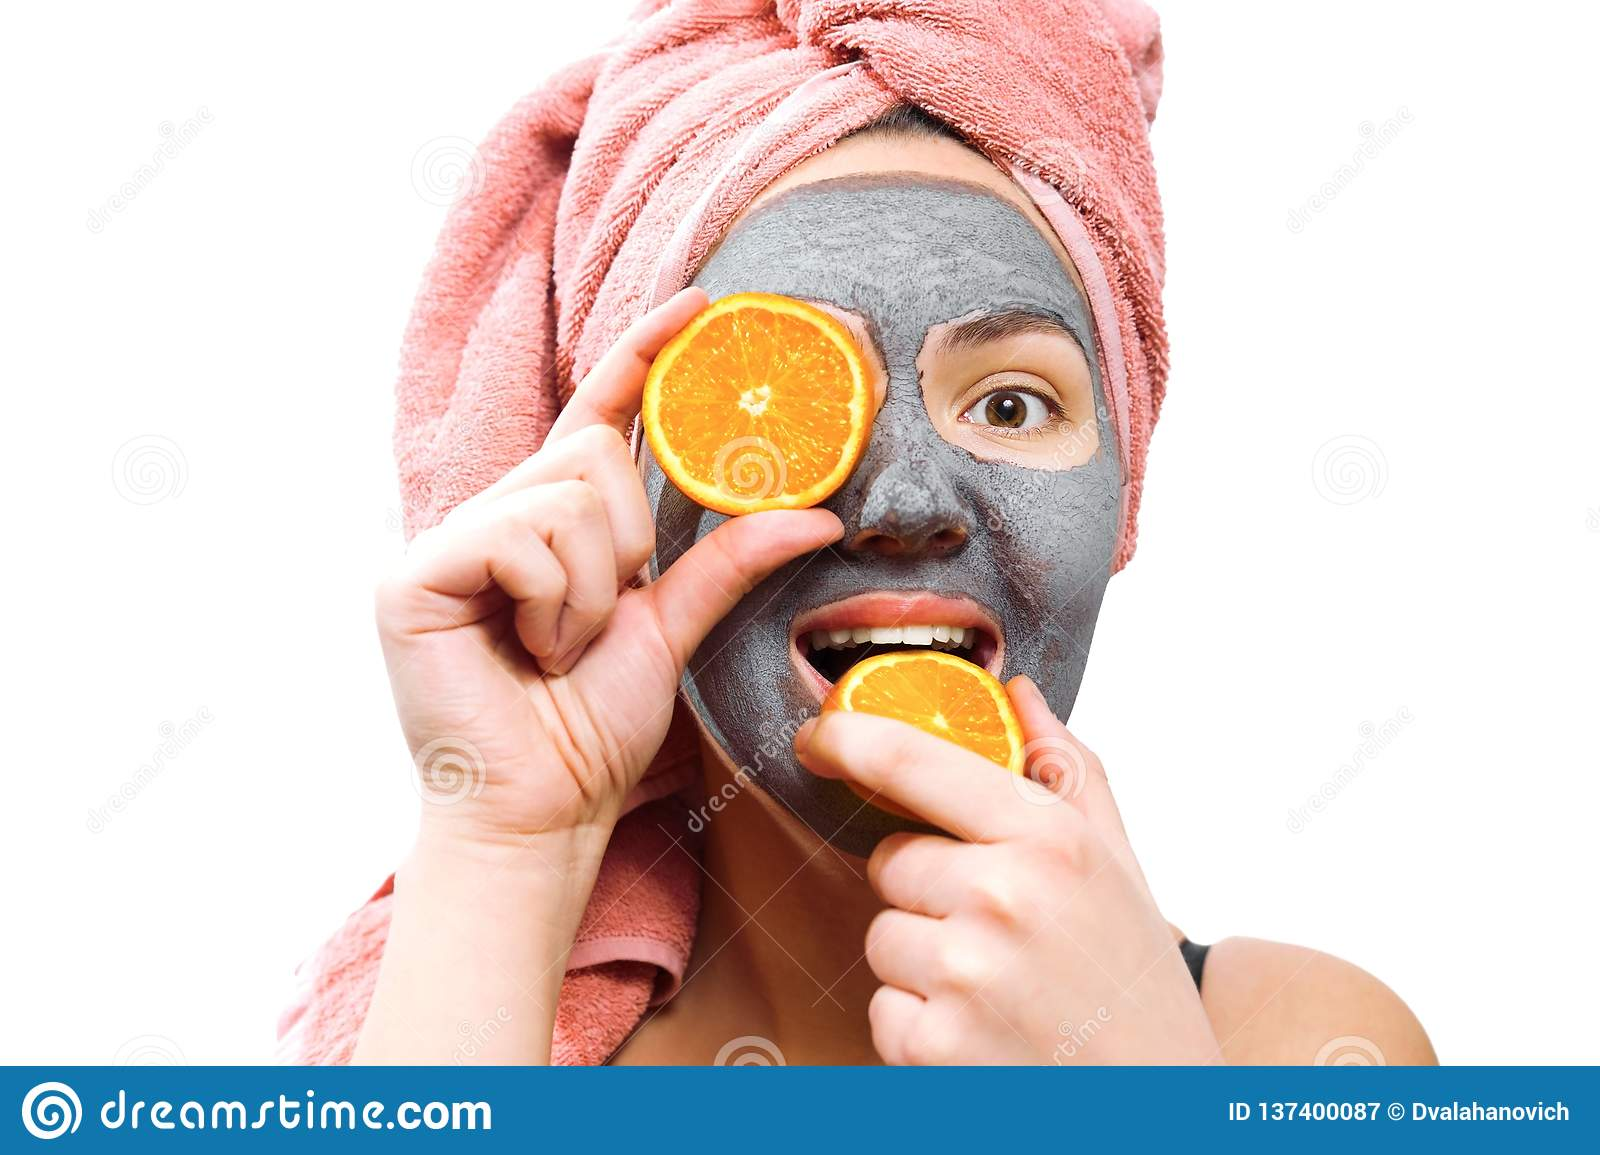 Mask for skin woman, happy and funny girl makes a mask for face skin, girl closes her eyes with orange, girl is smiling and bites